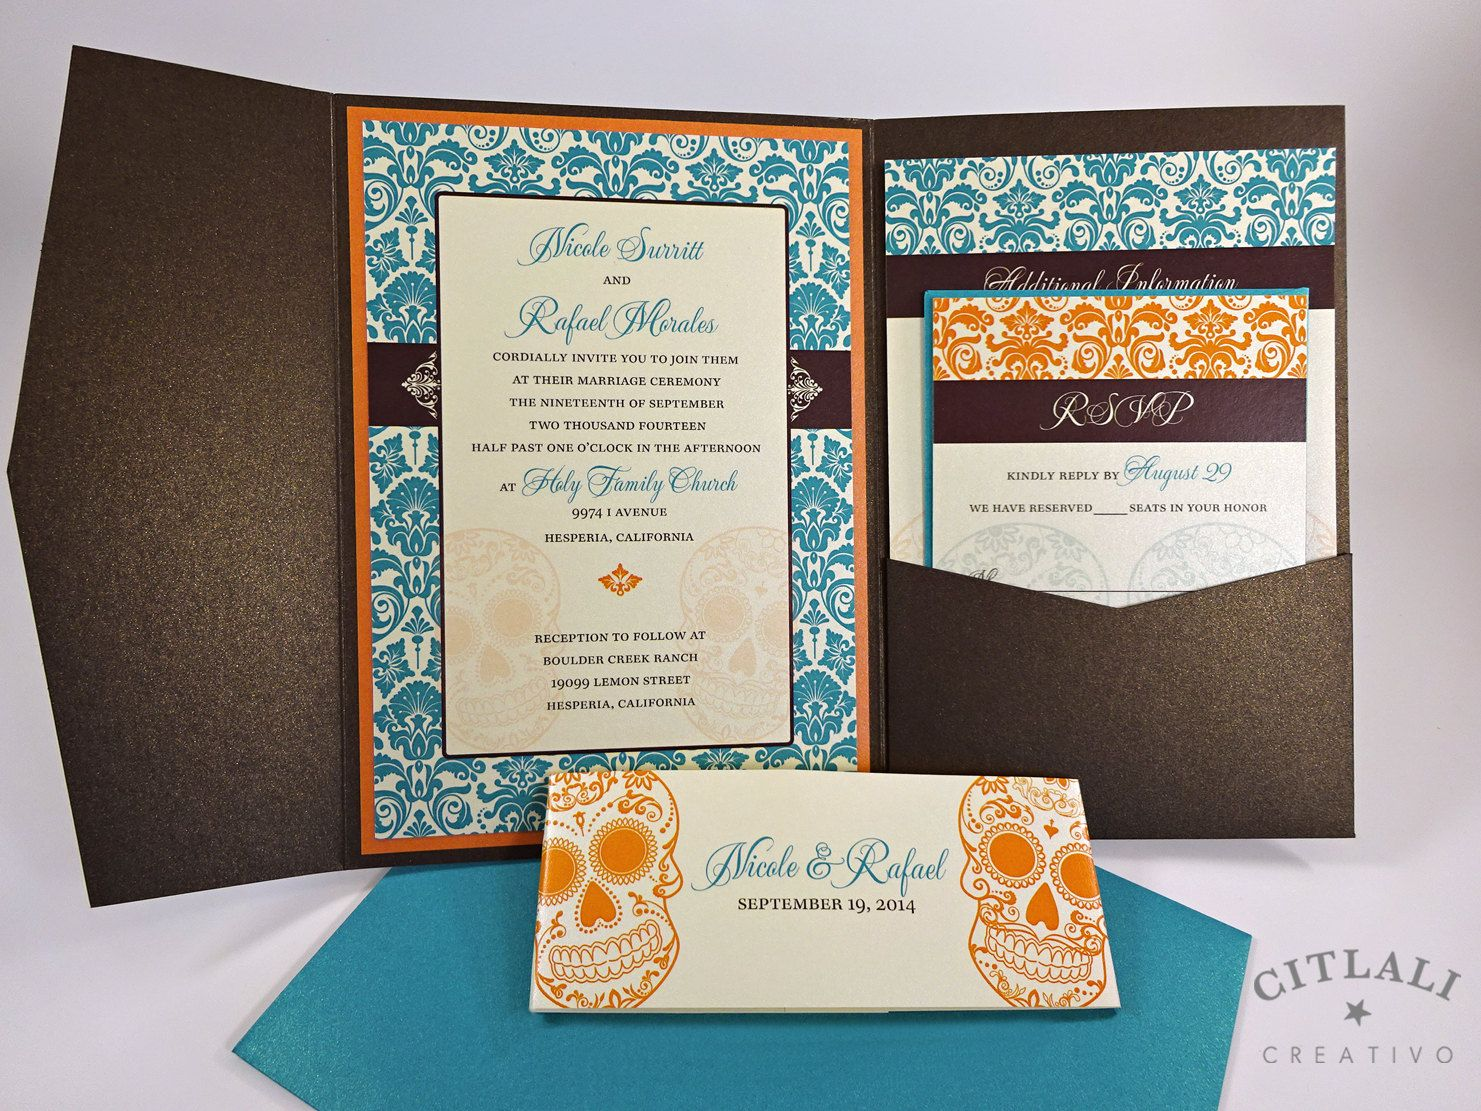 Day Of The Dead Wedding Invitations Dia De Los Muertos Invitation In Sugar Skull Damask Pocketfold Teal Orange Brown Ivory Or Any Colors Citlali